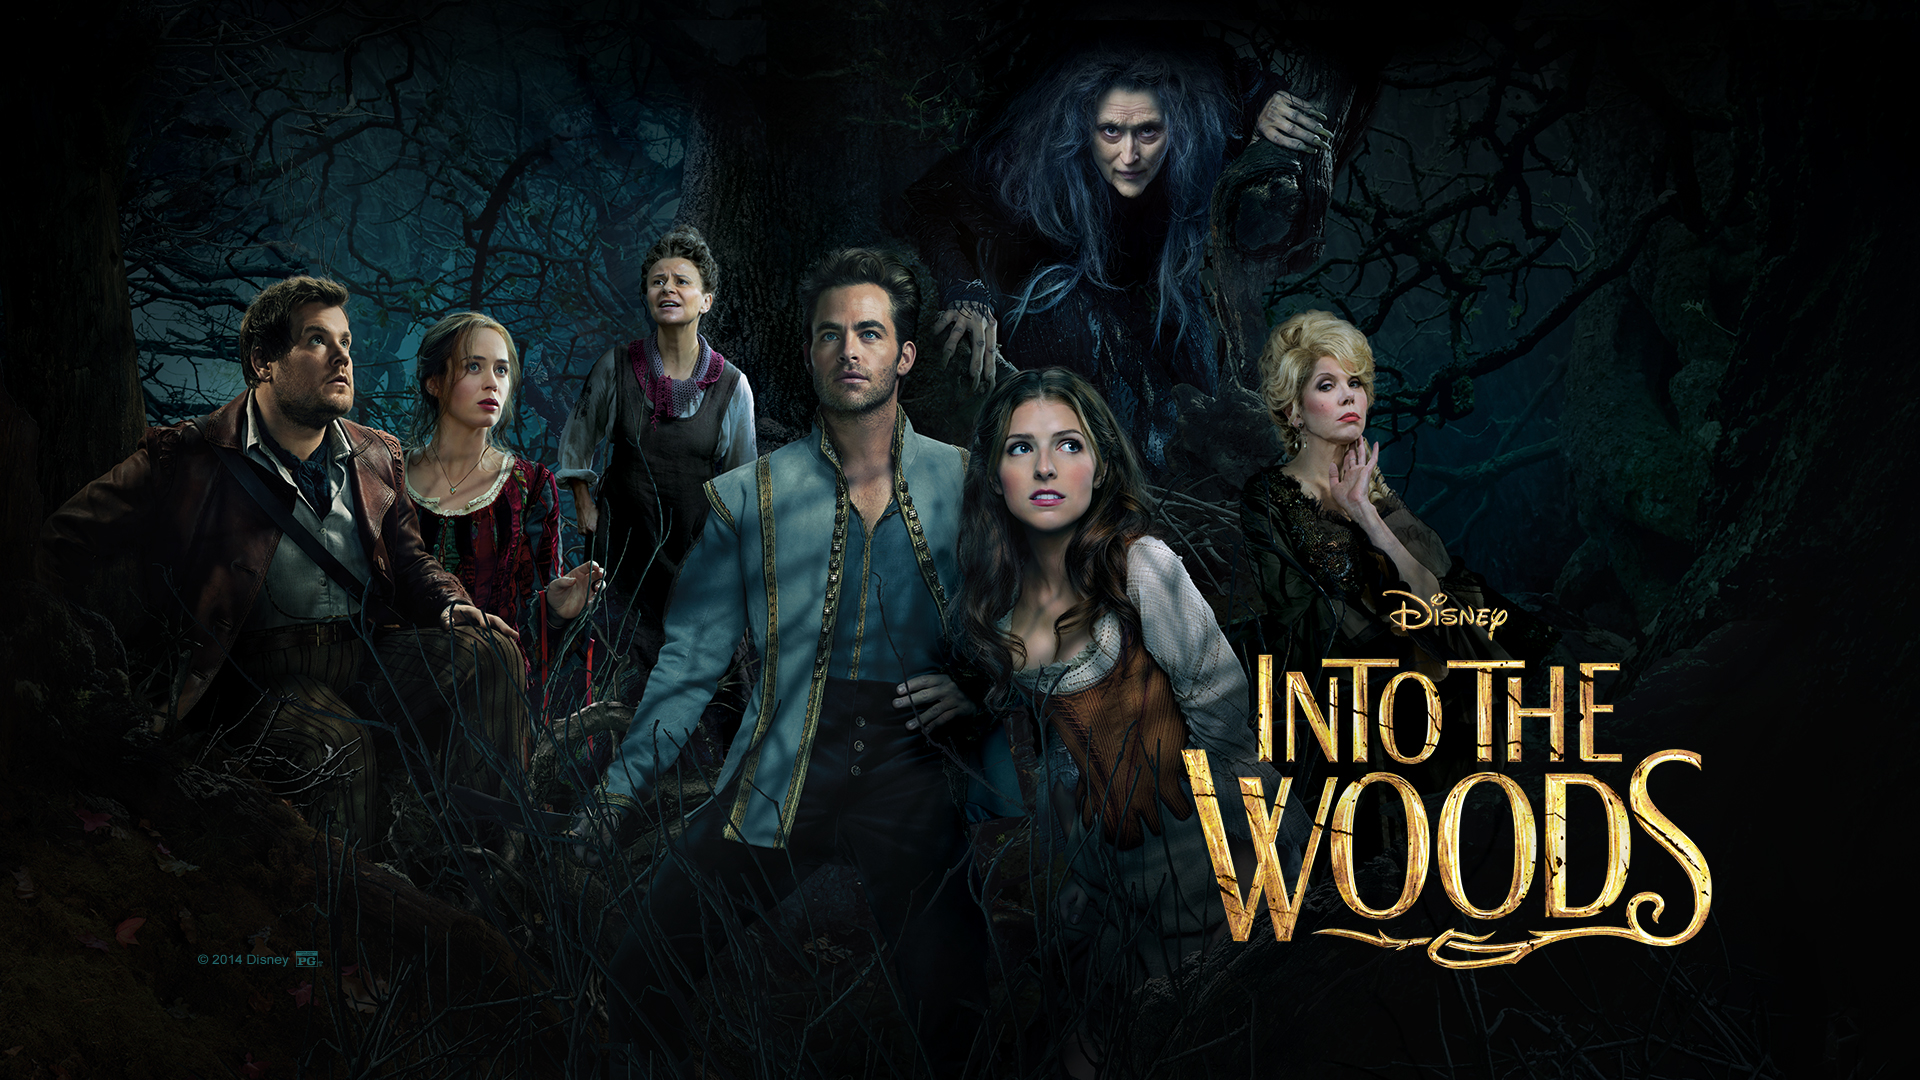 Into the woods (Ciné) – Bigreblog